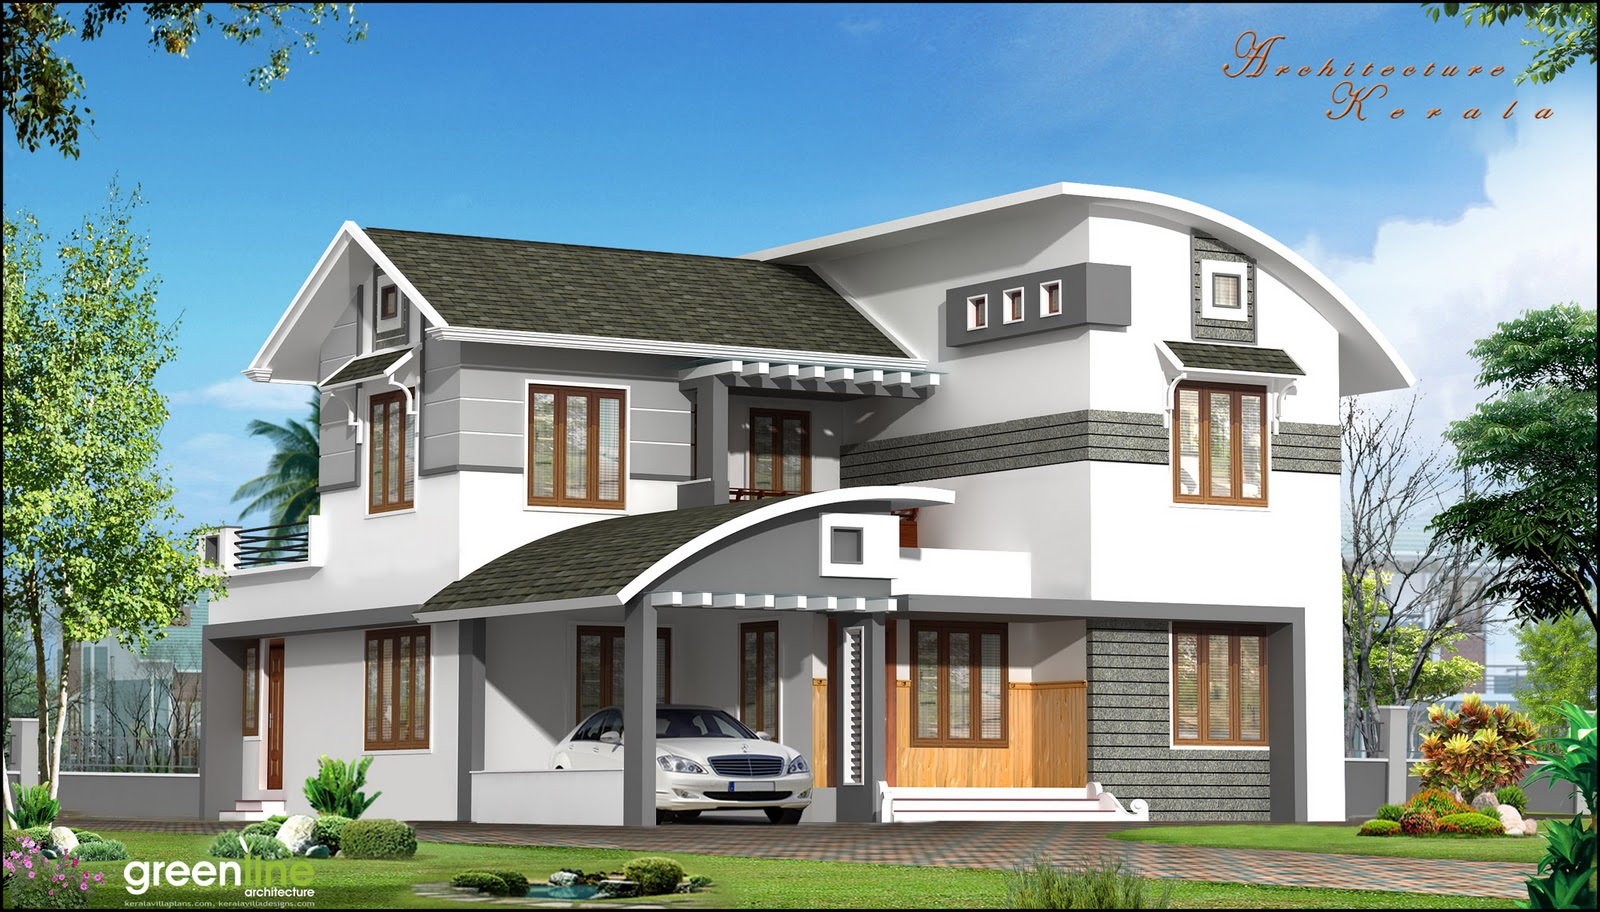 Architecture kerala a beautiful house elevation for Beautiful architecture houses